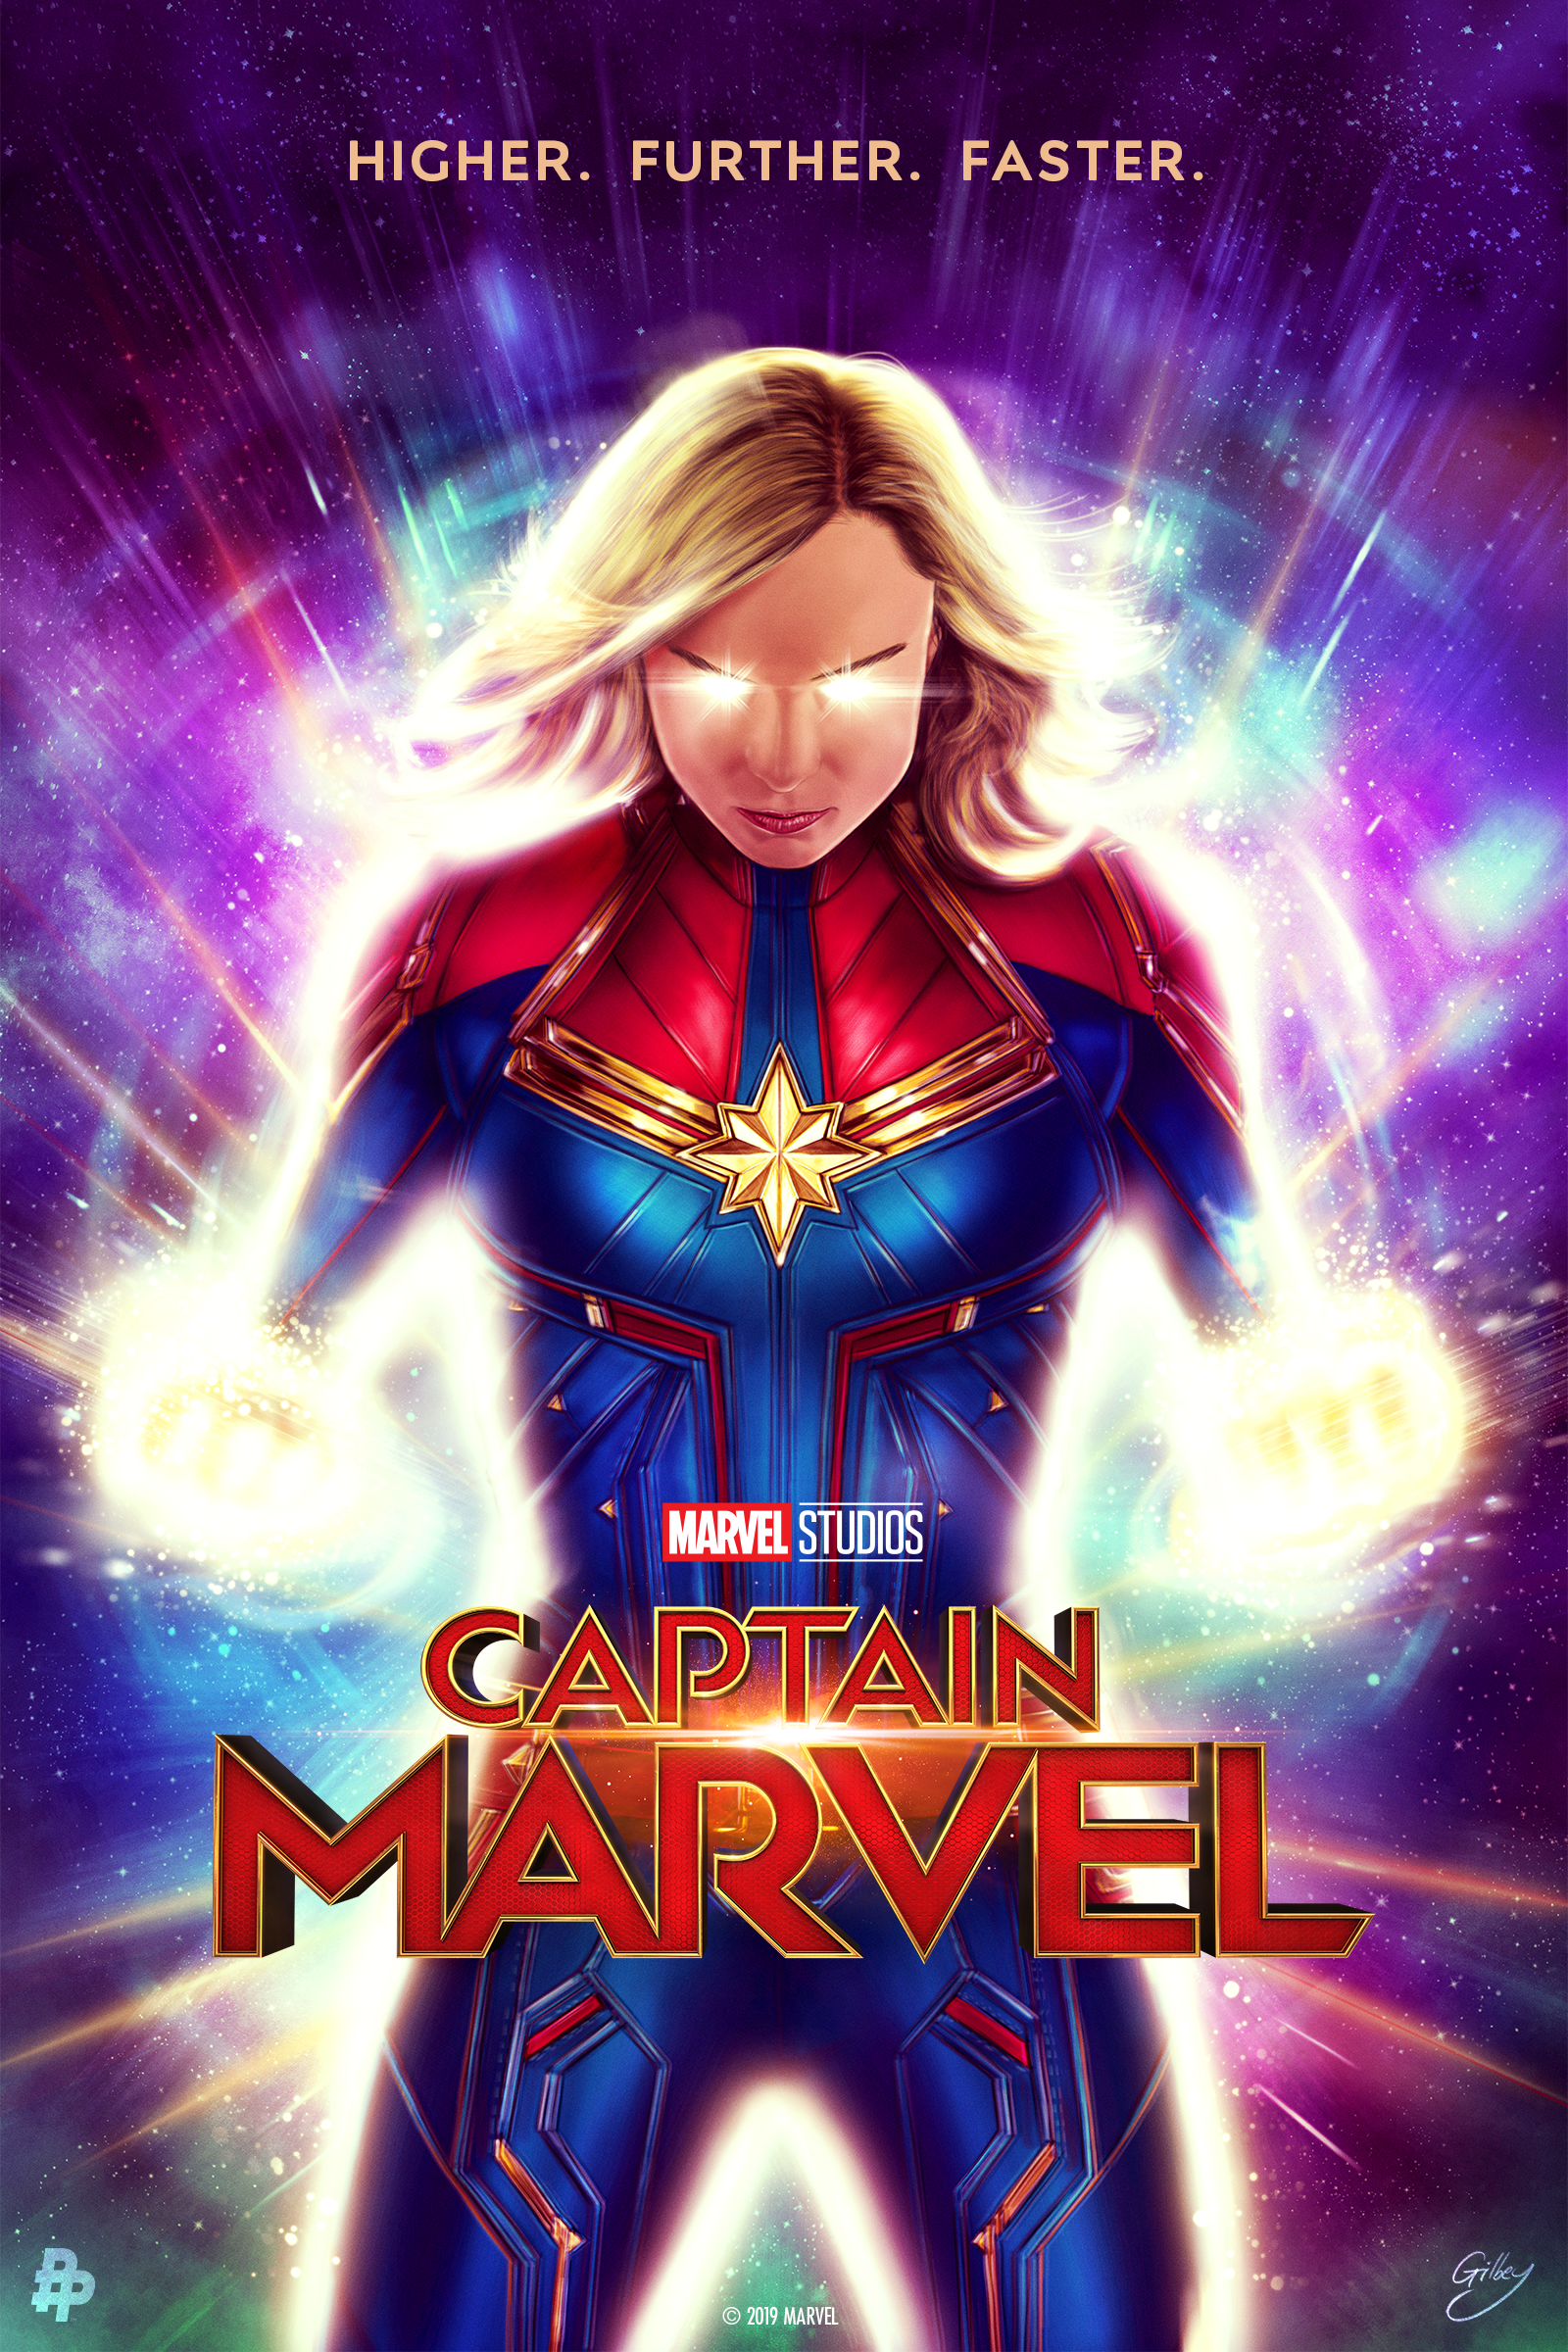 Here S Your Look At The Marvel Studios Captainmarvel Inspired Poster From Artist Sam Gilbey Art Captain Marvel Marvel Posters Marvel Movies